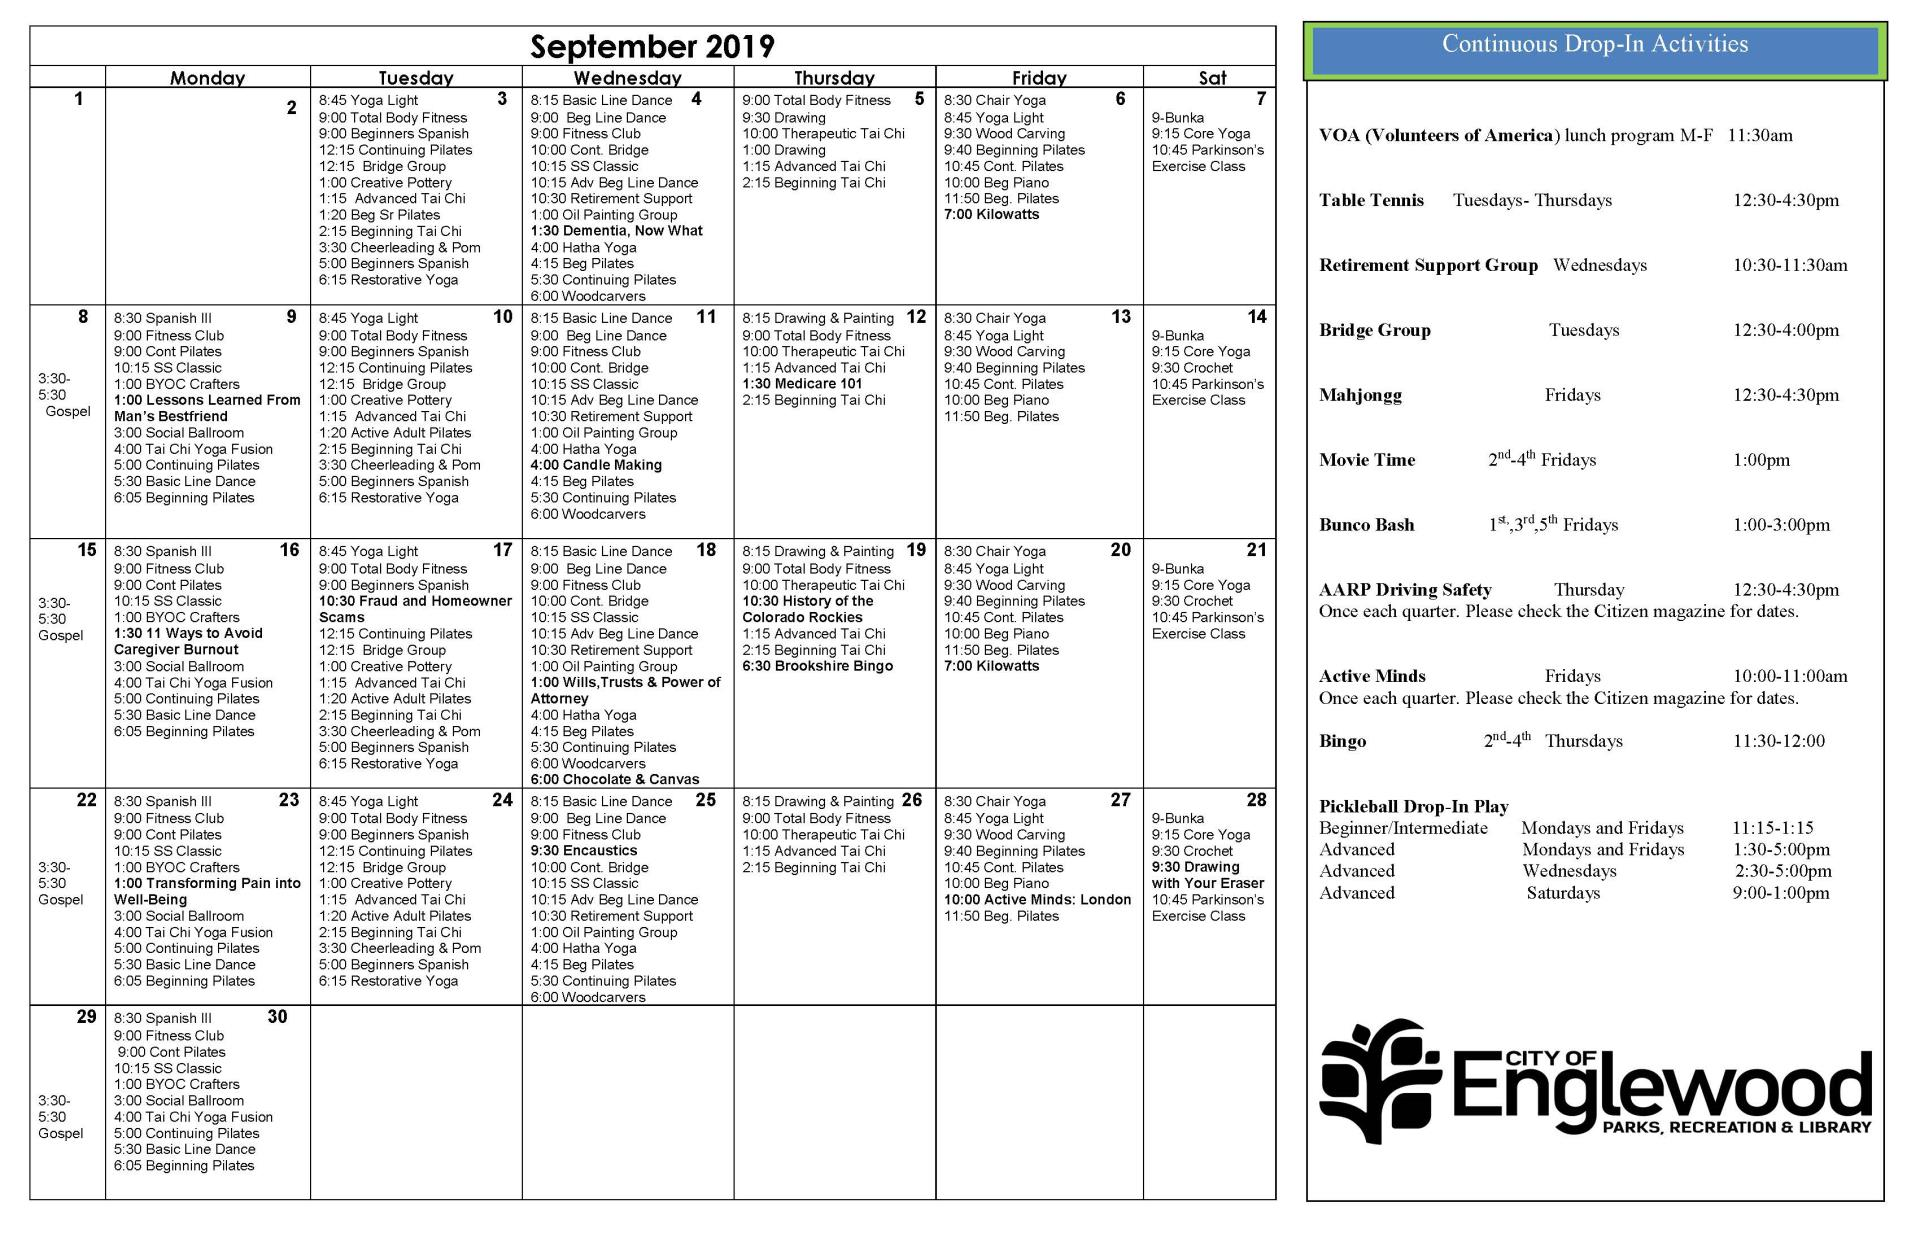 September 2019 Event Calendar for Malley